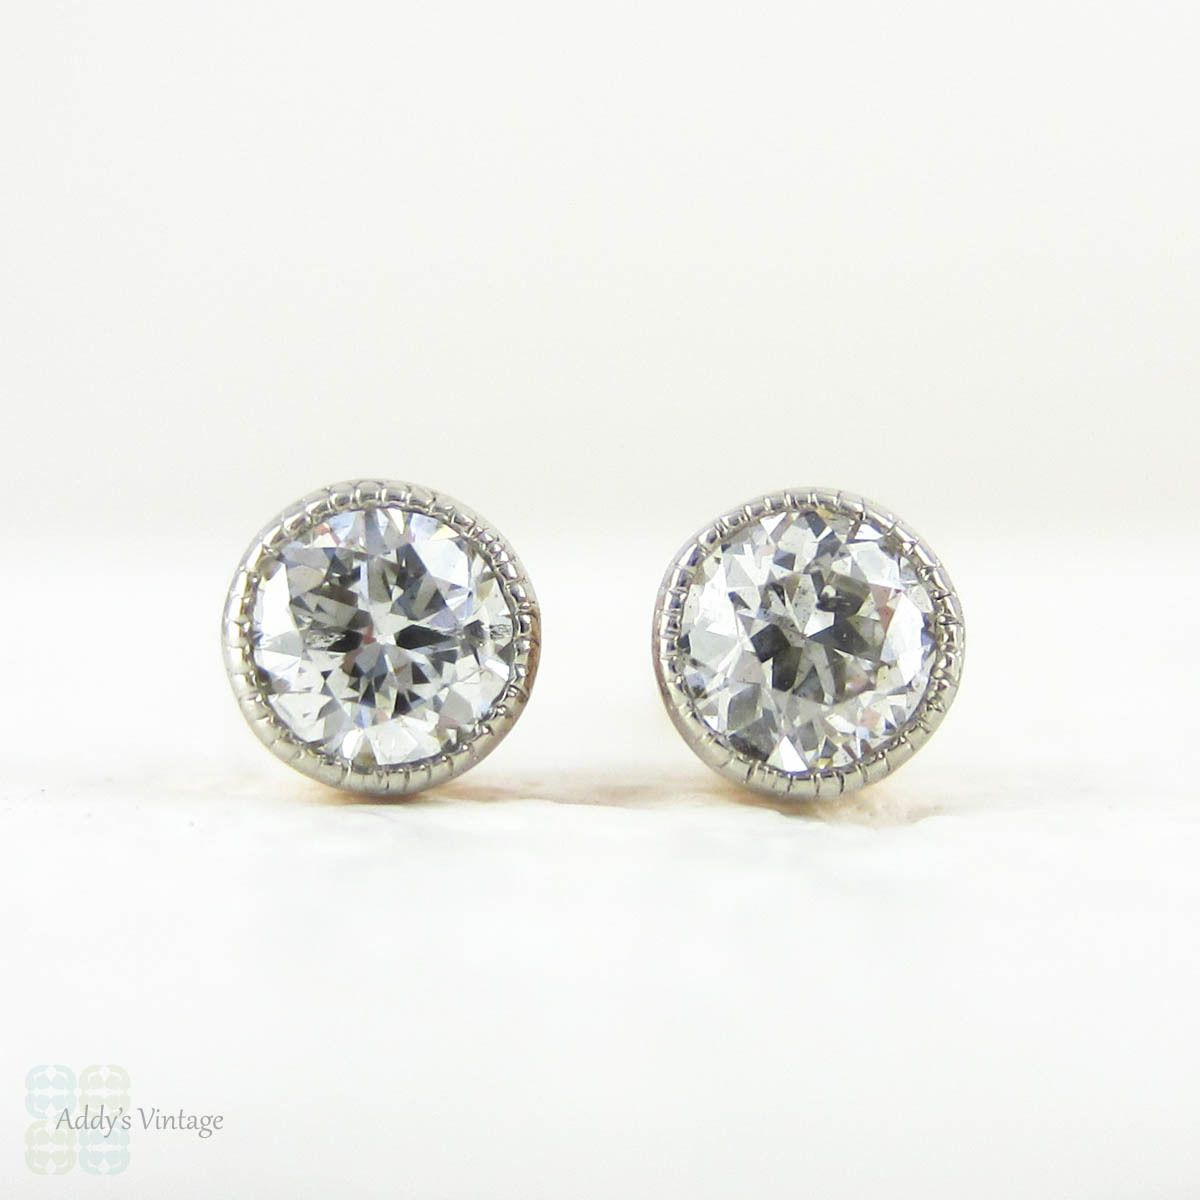 Old European Diamond Earrings In Rose Gold With Platinum Edge Antique 1900s Baby Bezel Settings Milgrain Beading 18ct